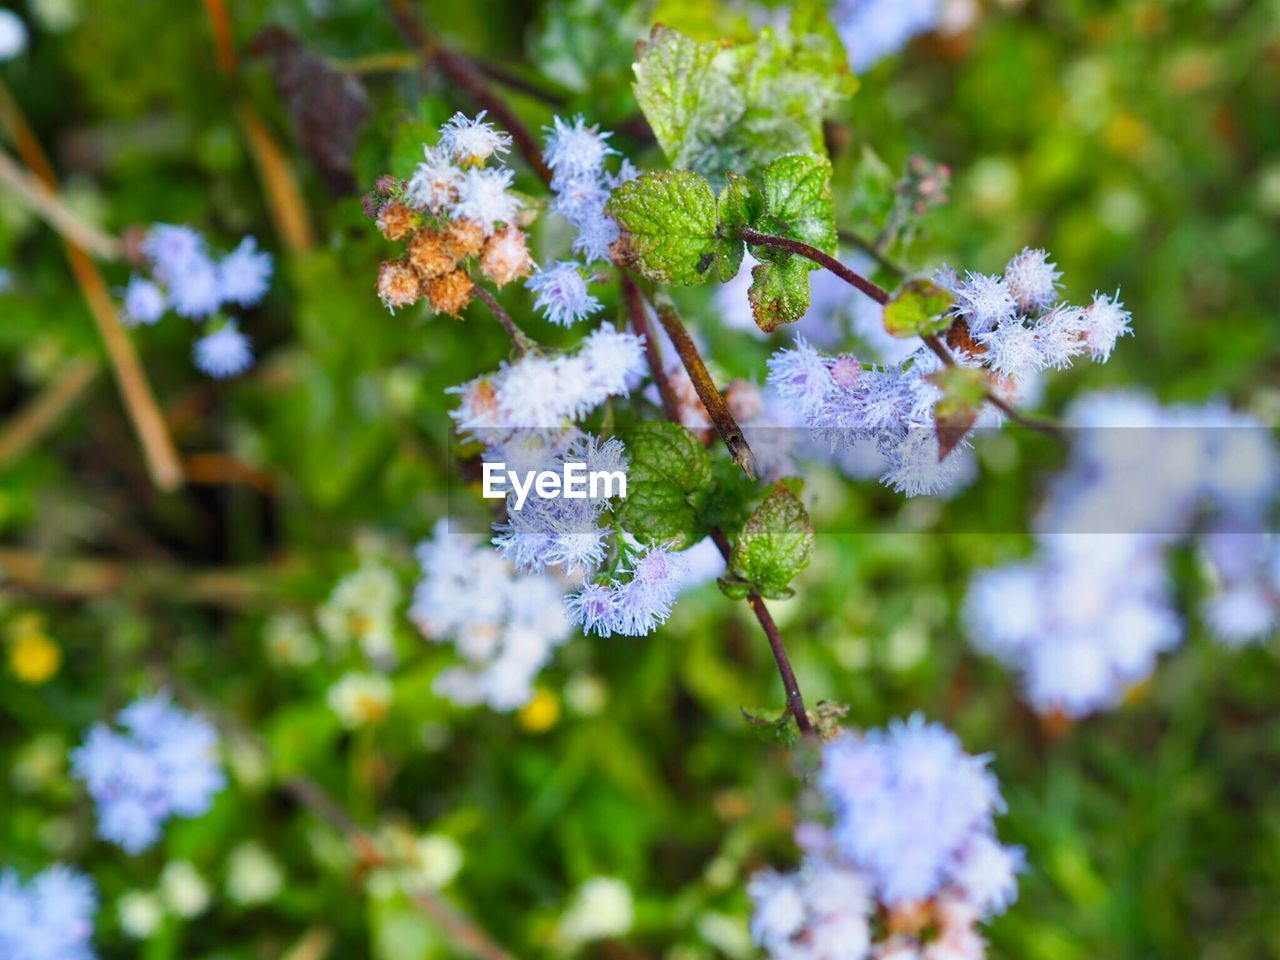 flowering plant, flower, plant, vulnerability, fragility, growth, beauty in nature, freshness, close-up, day, nature, focus on foreground, selective focus, flower head, no people, inflorescence, petal, outdoors, botany, plant part, purple